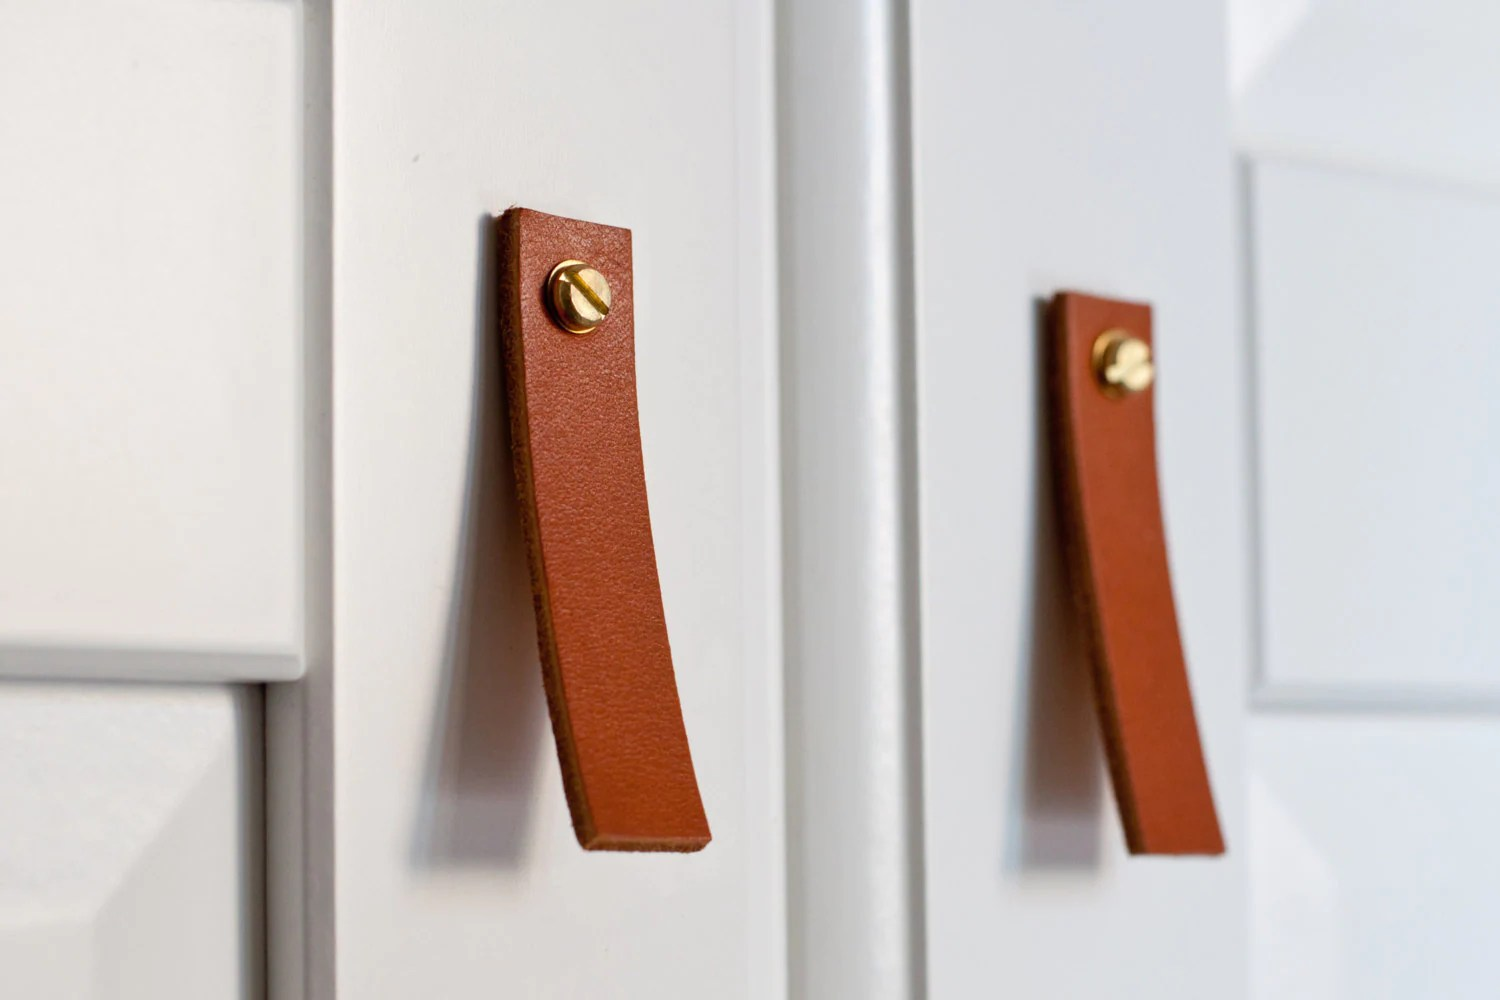 Door Pulls Leather Drawer Pulls Leather Door Handles Leather Door Pulls Leather Knobs Cupboard Handles Leather Drawer Pulls Leather Knob Pulls